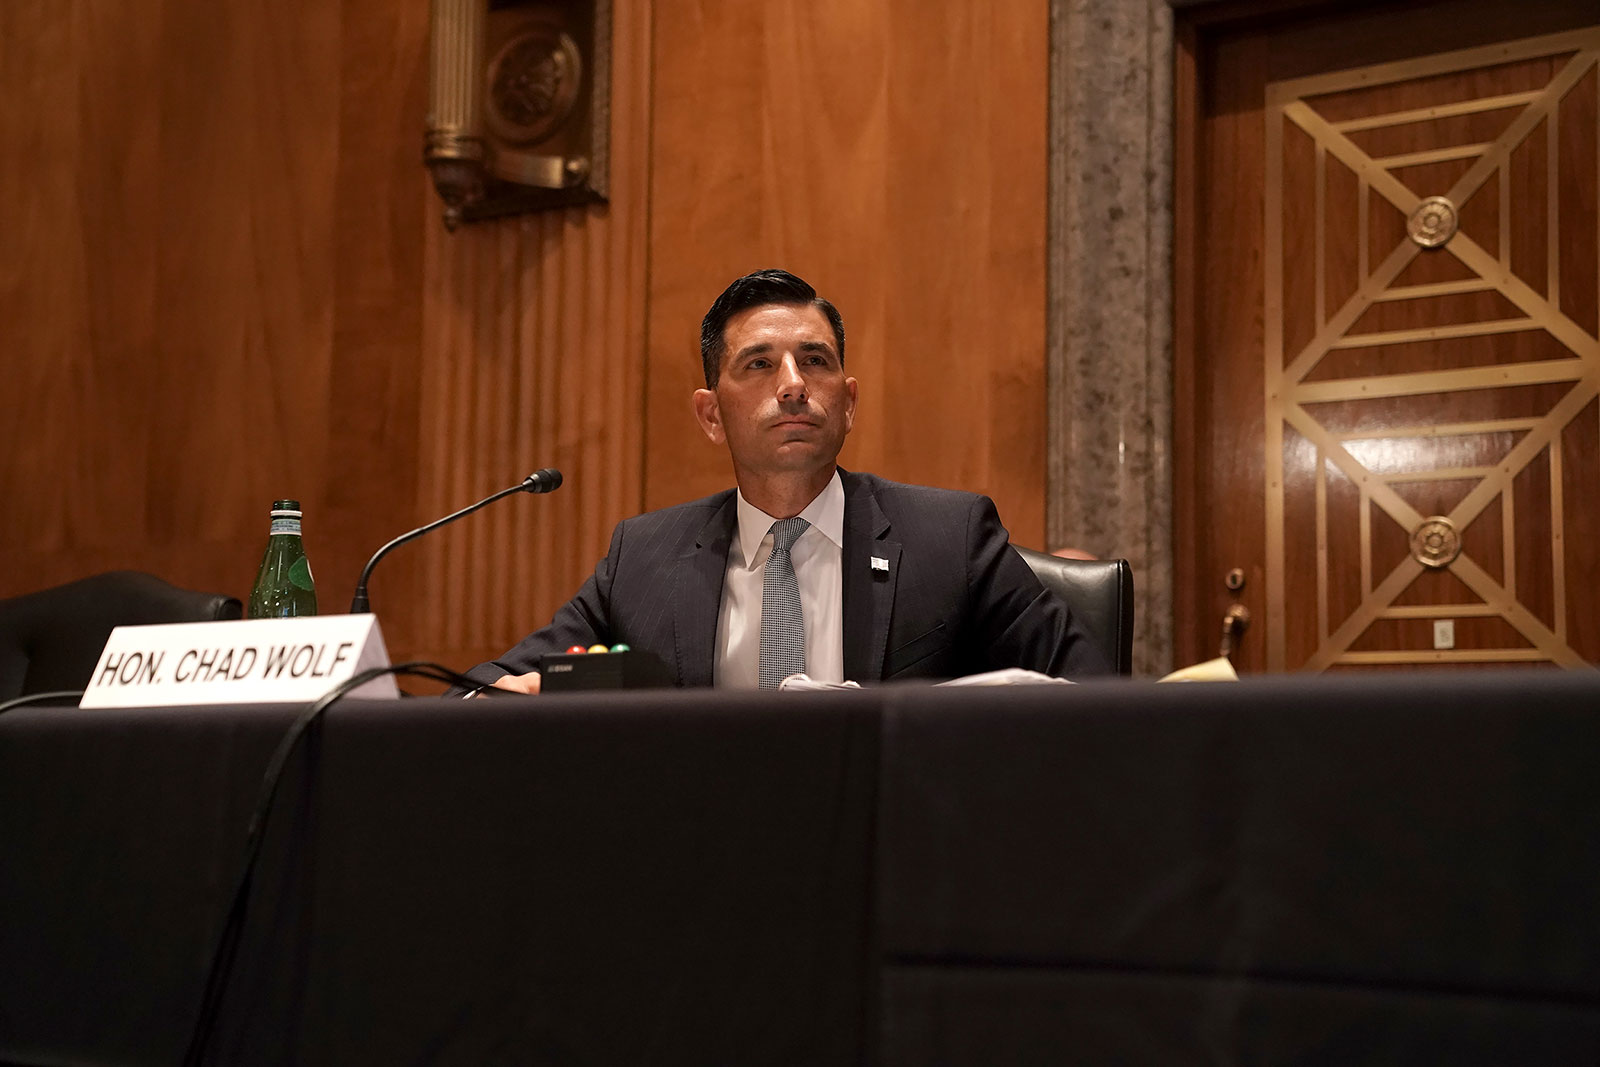 Then-acting Department of Homeland Security Secretary Chad Wolf testifies during his confirmation hearing before the Senate on September 23, 2020.